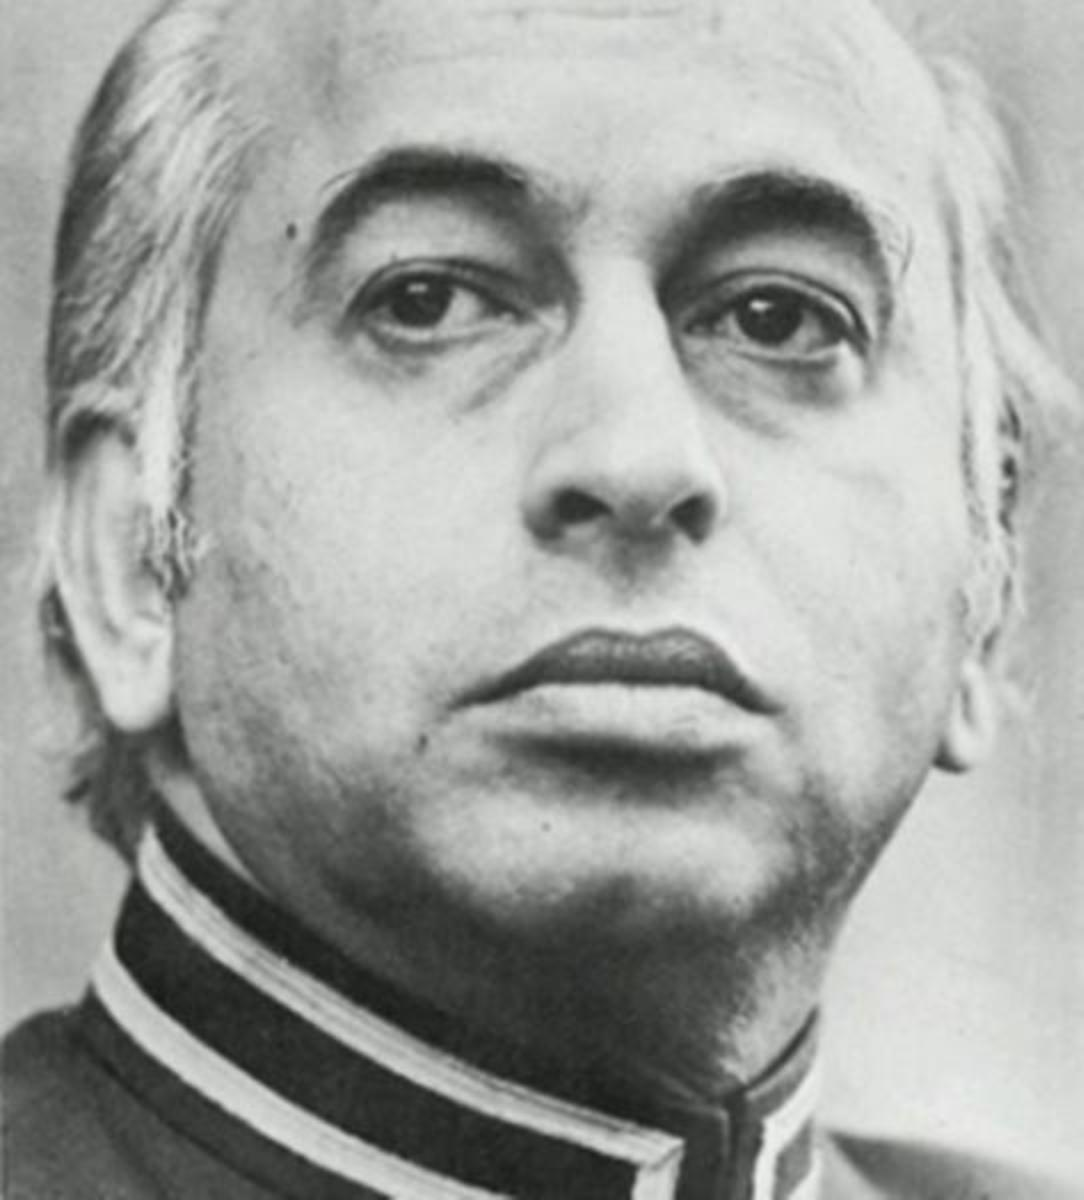 Bhutto Was Hanged to Death but He Was Also the Man Who Broke up Pakistan Set It on Course to Extremism and Intolerance